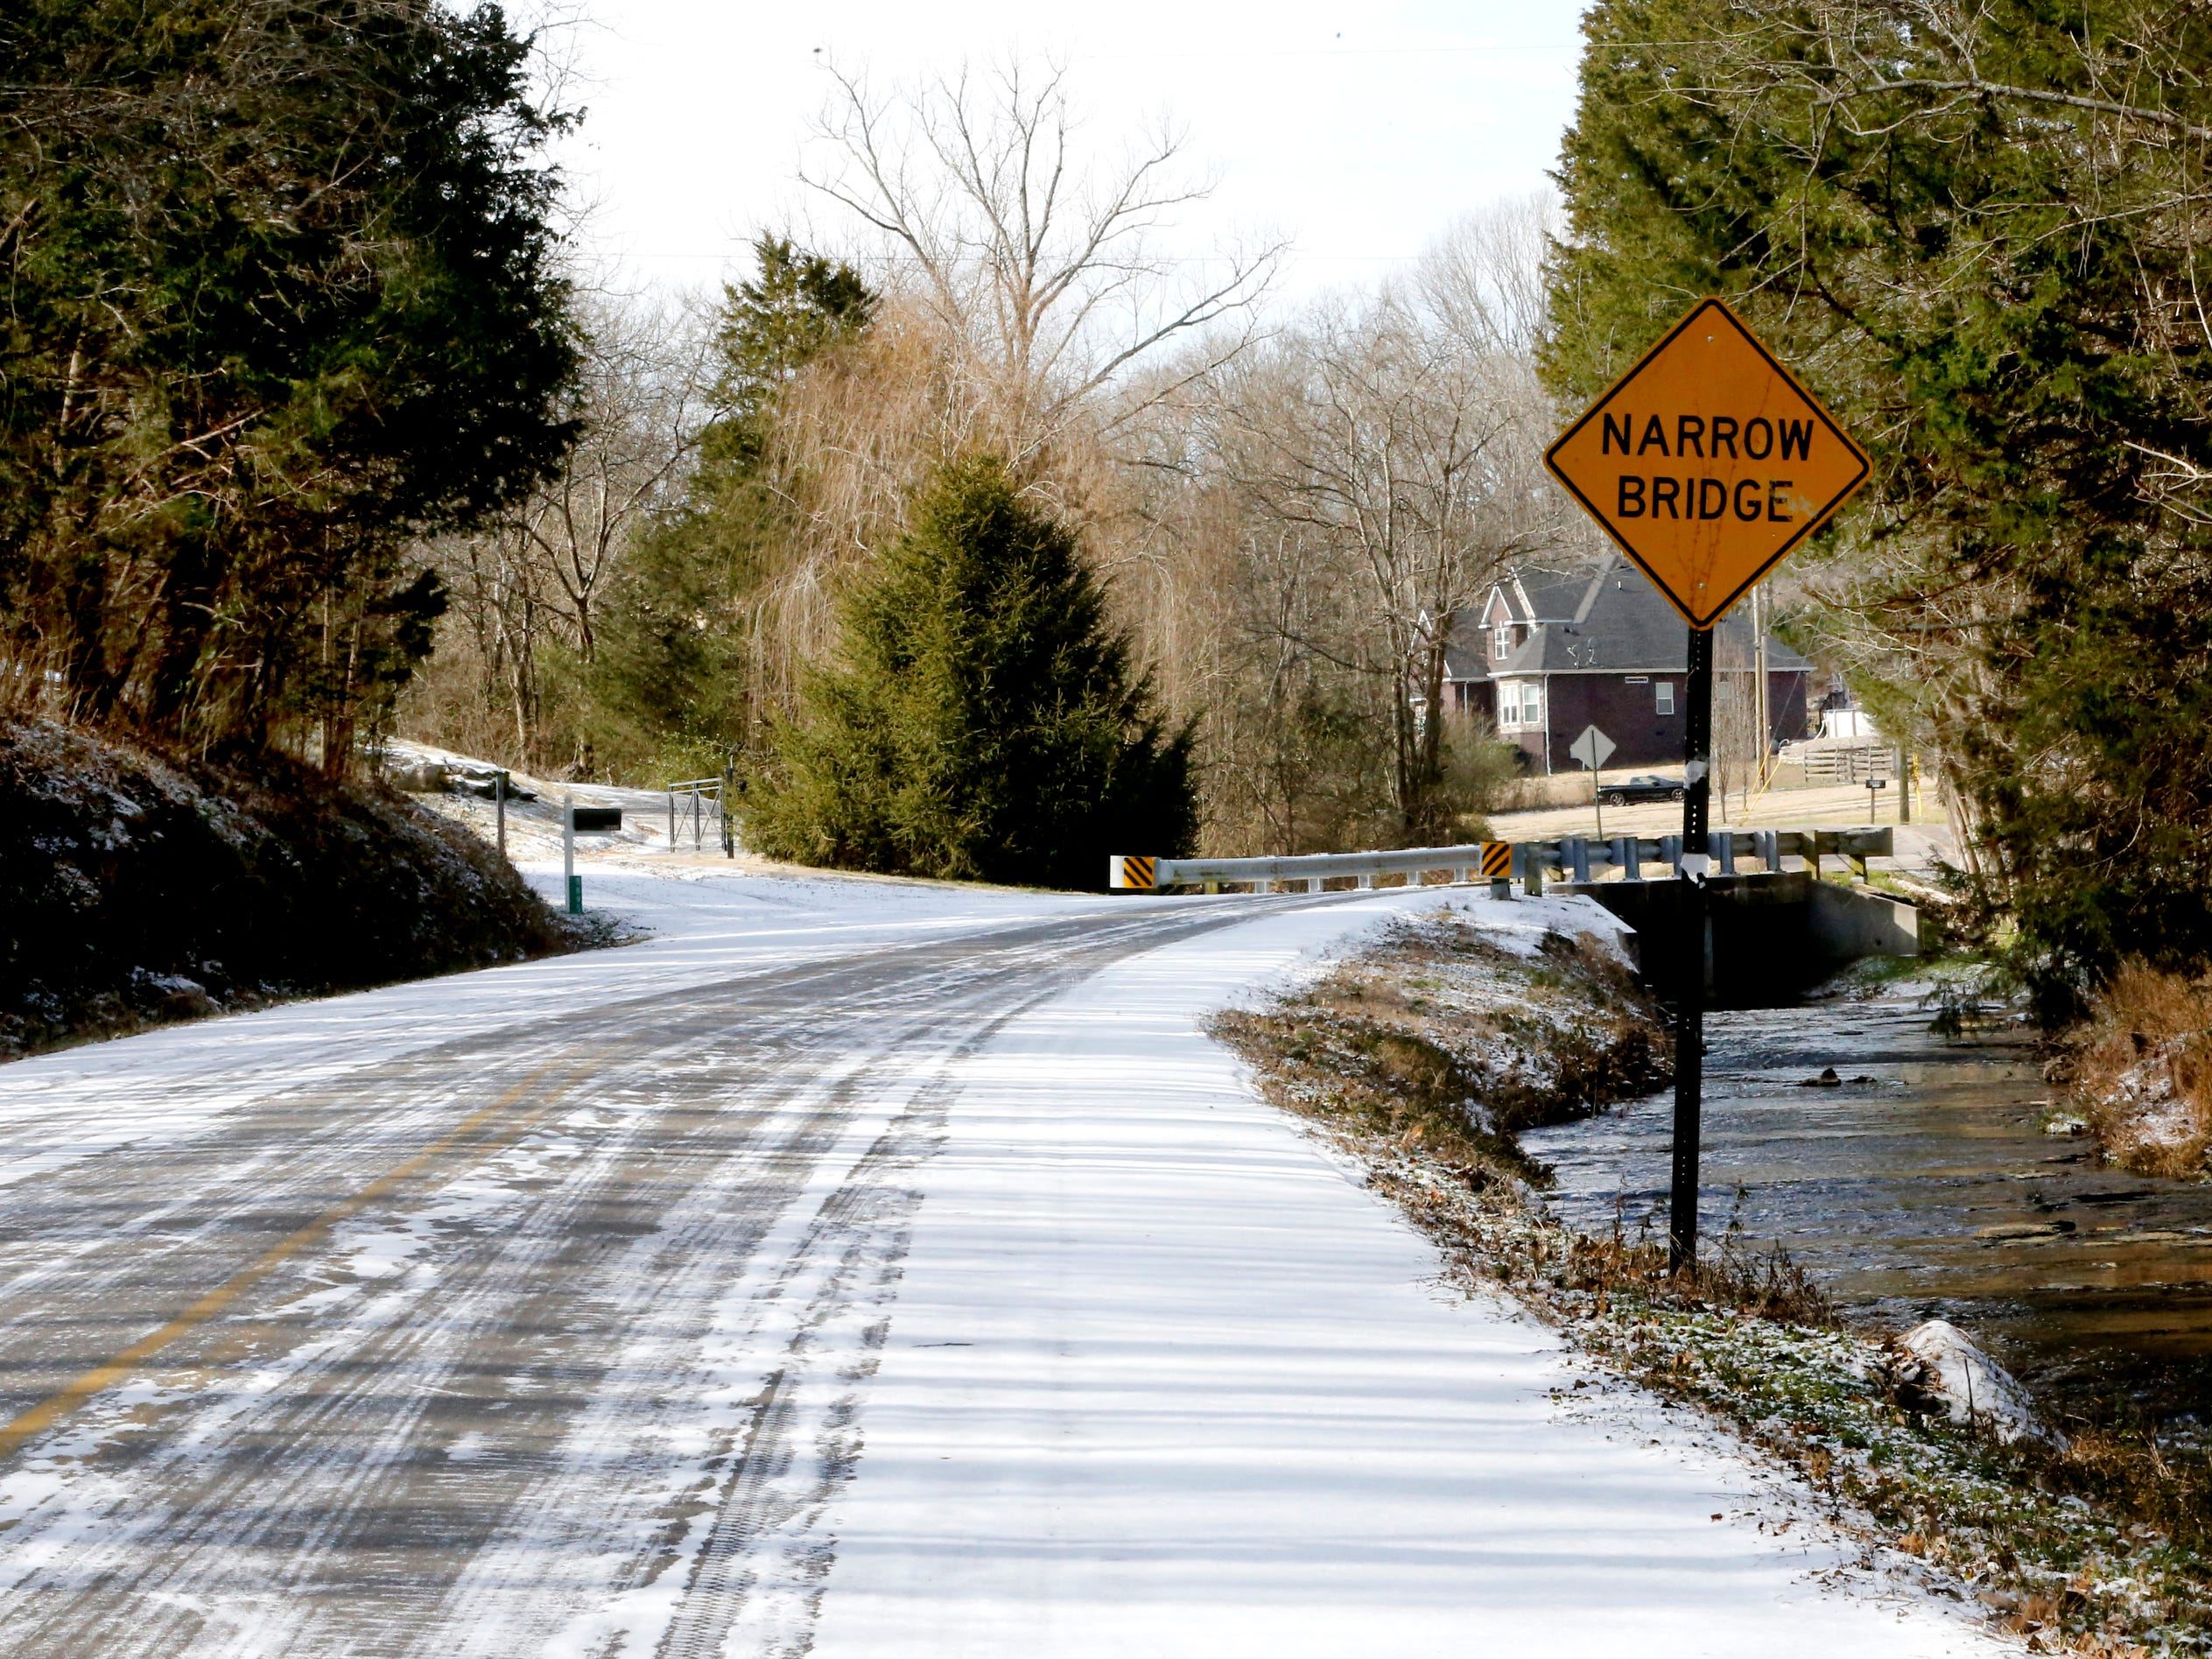 Even after most of the main roads were clear of ice and snow backroads and driveways were still white with a light coat of snow and ice on Wednesday, Jan. 30, 2019.